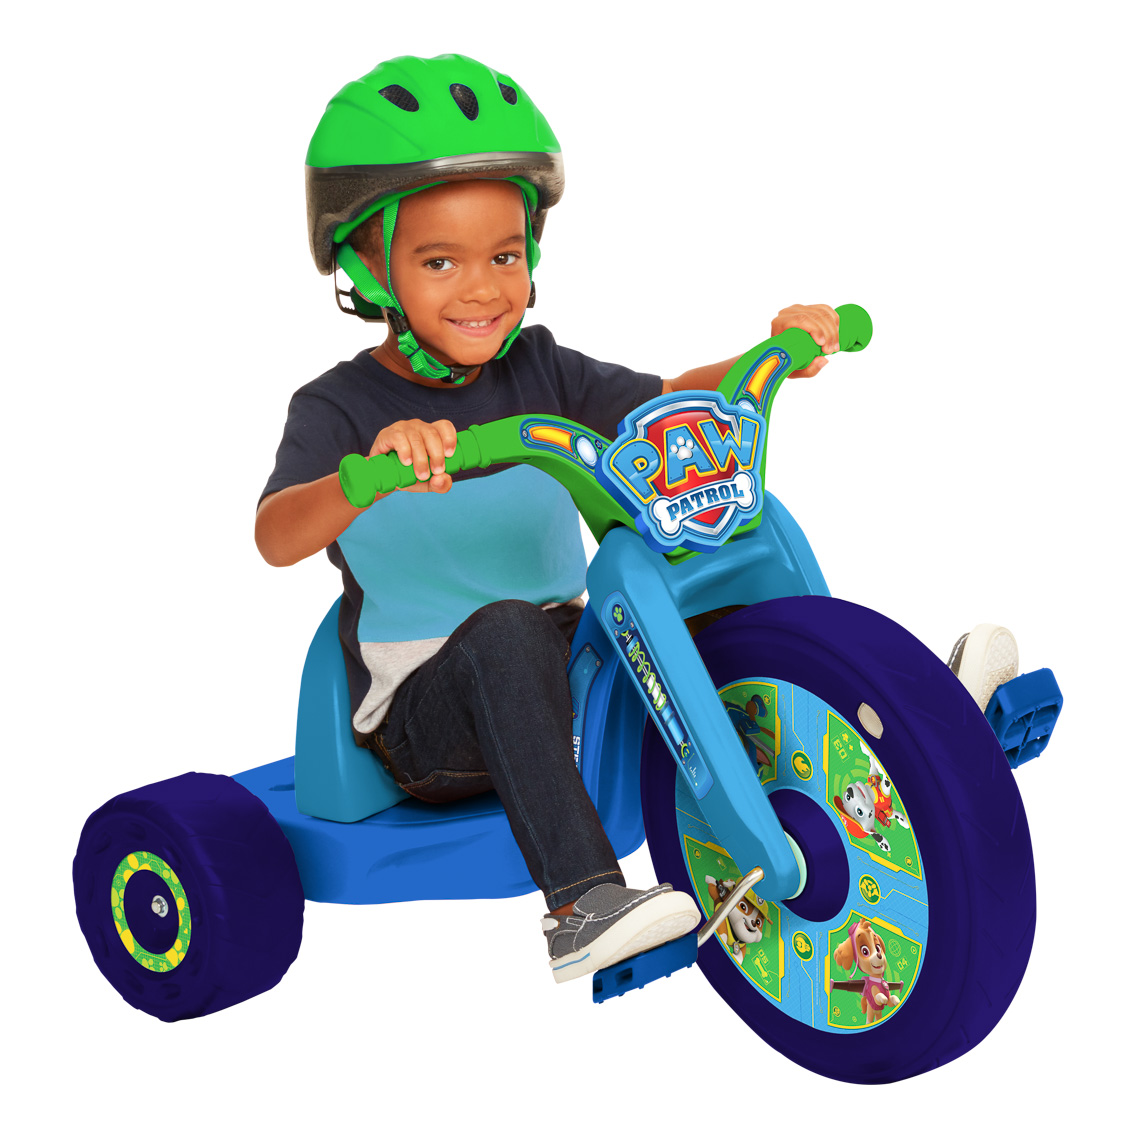 76078Seasonal_FlyWheel_PawPatrol_15in_Lifestyle_20495